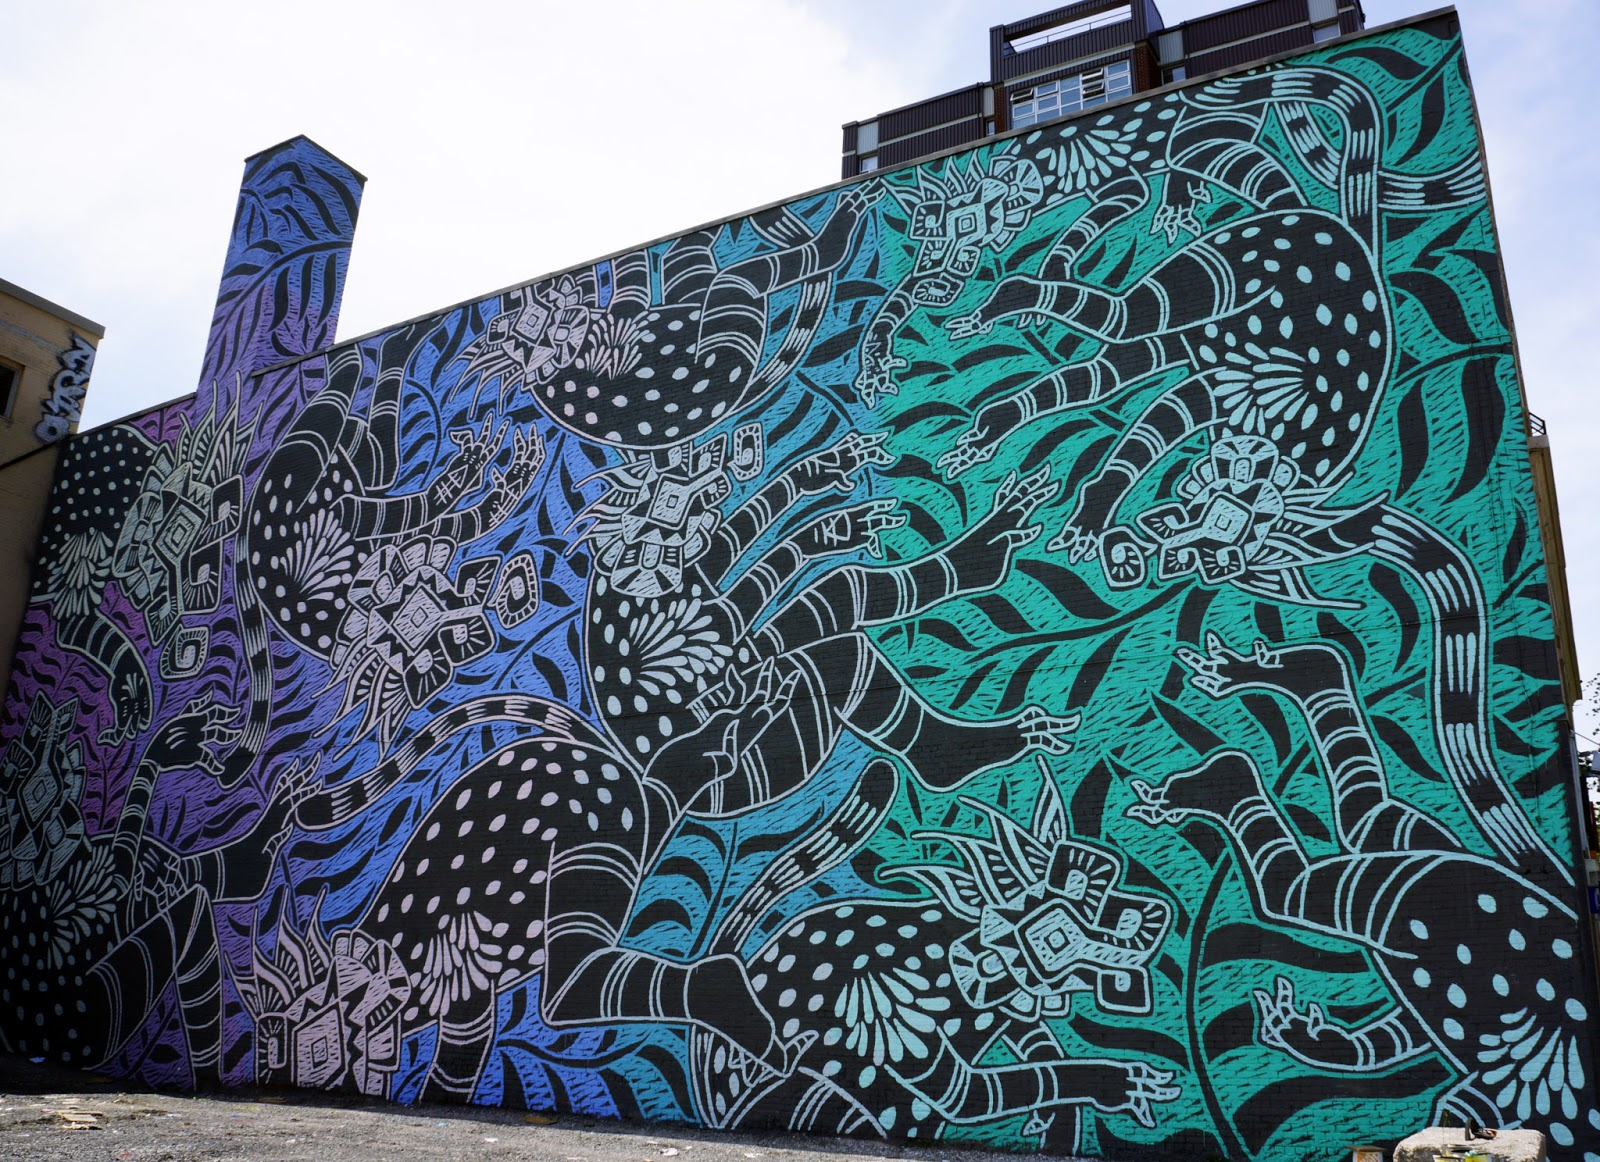 Mural 39 15 curiot creates a large new piece in montreal for Art mural montreal